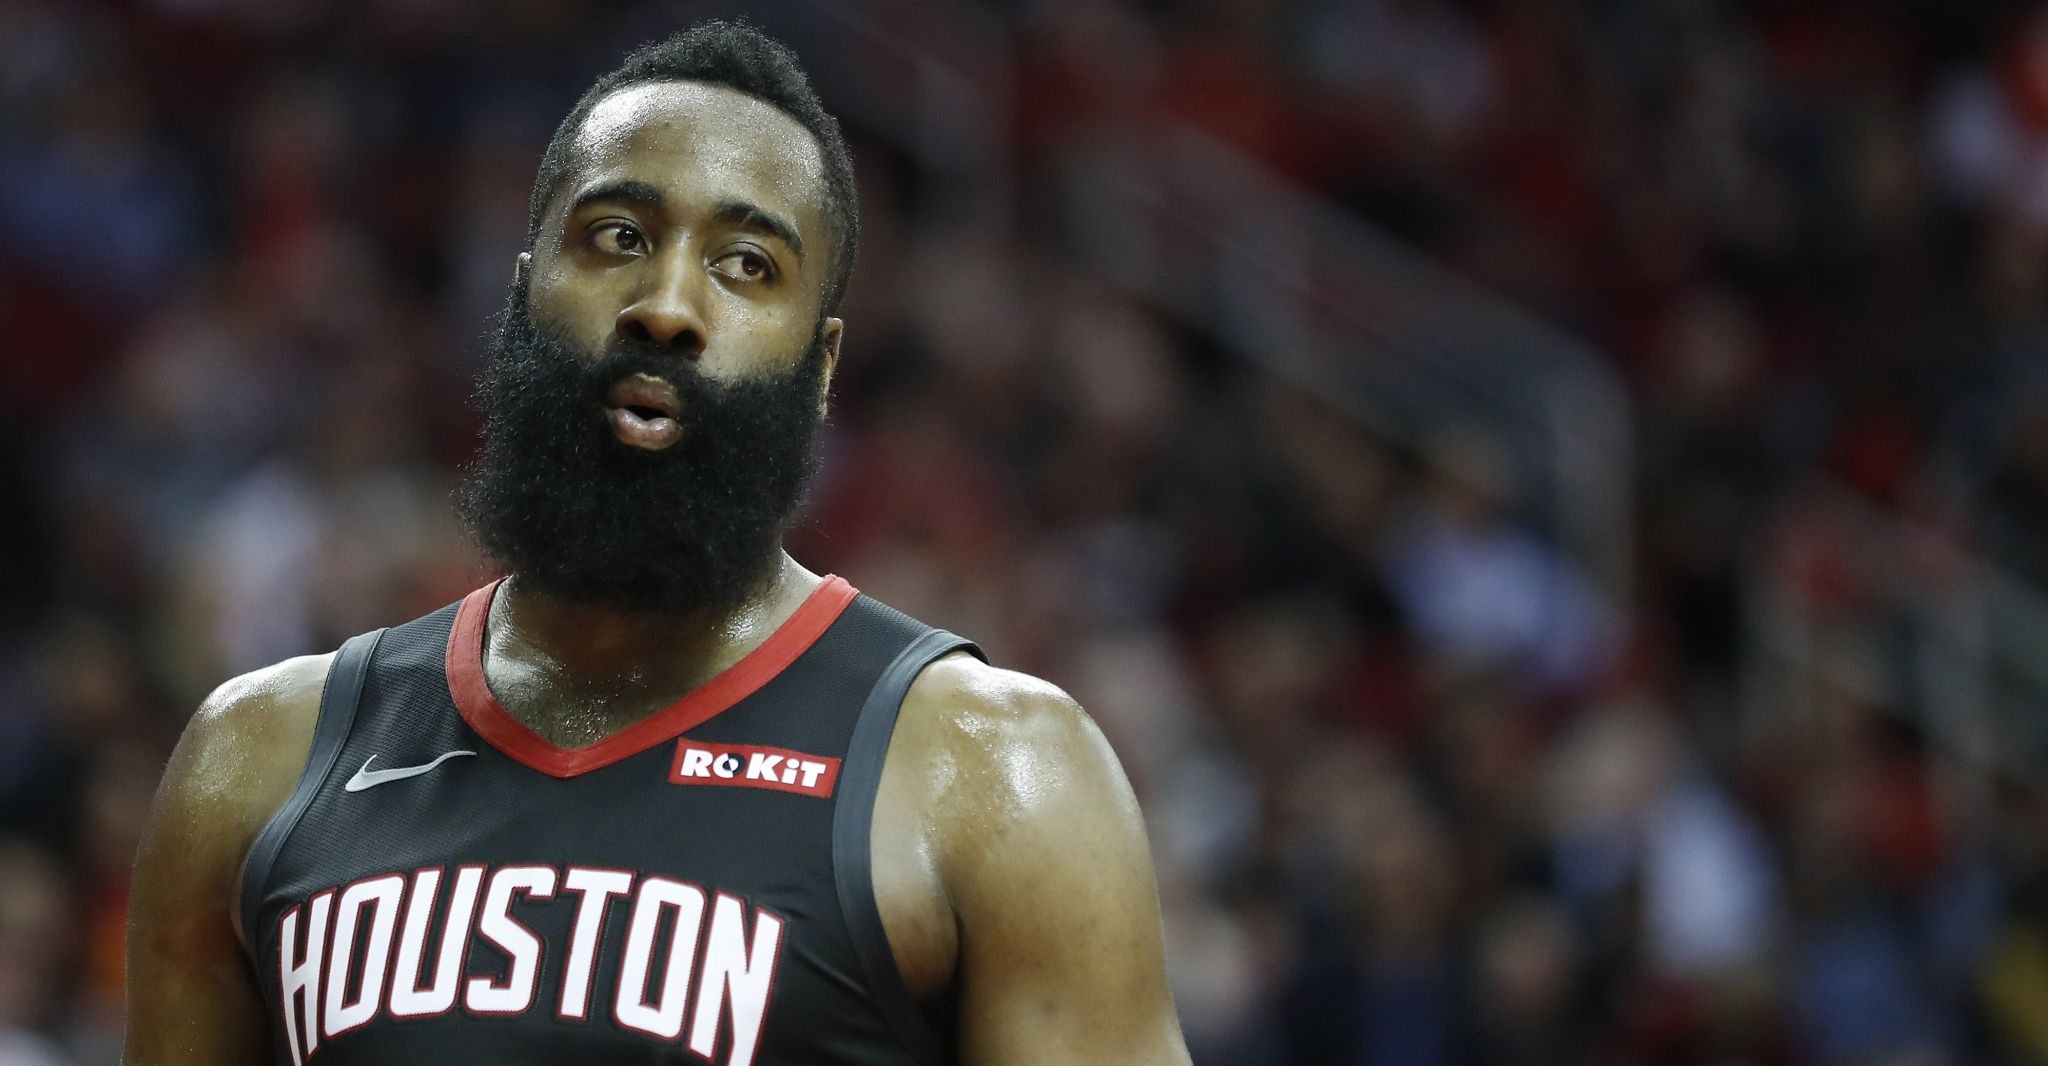 3-pointers  Takeaways from Rockets  win over Heat - HoustonChronicle.com 851eeb8ad